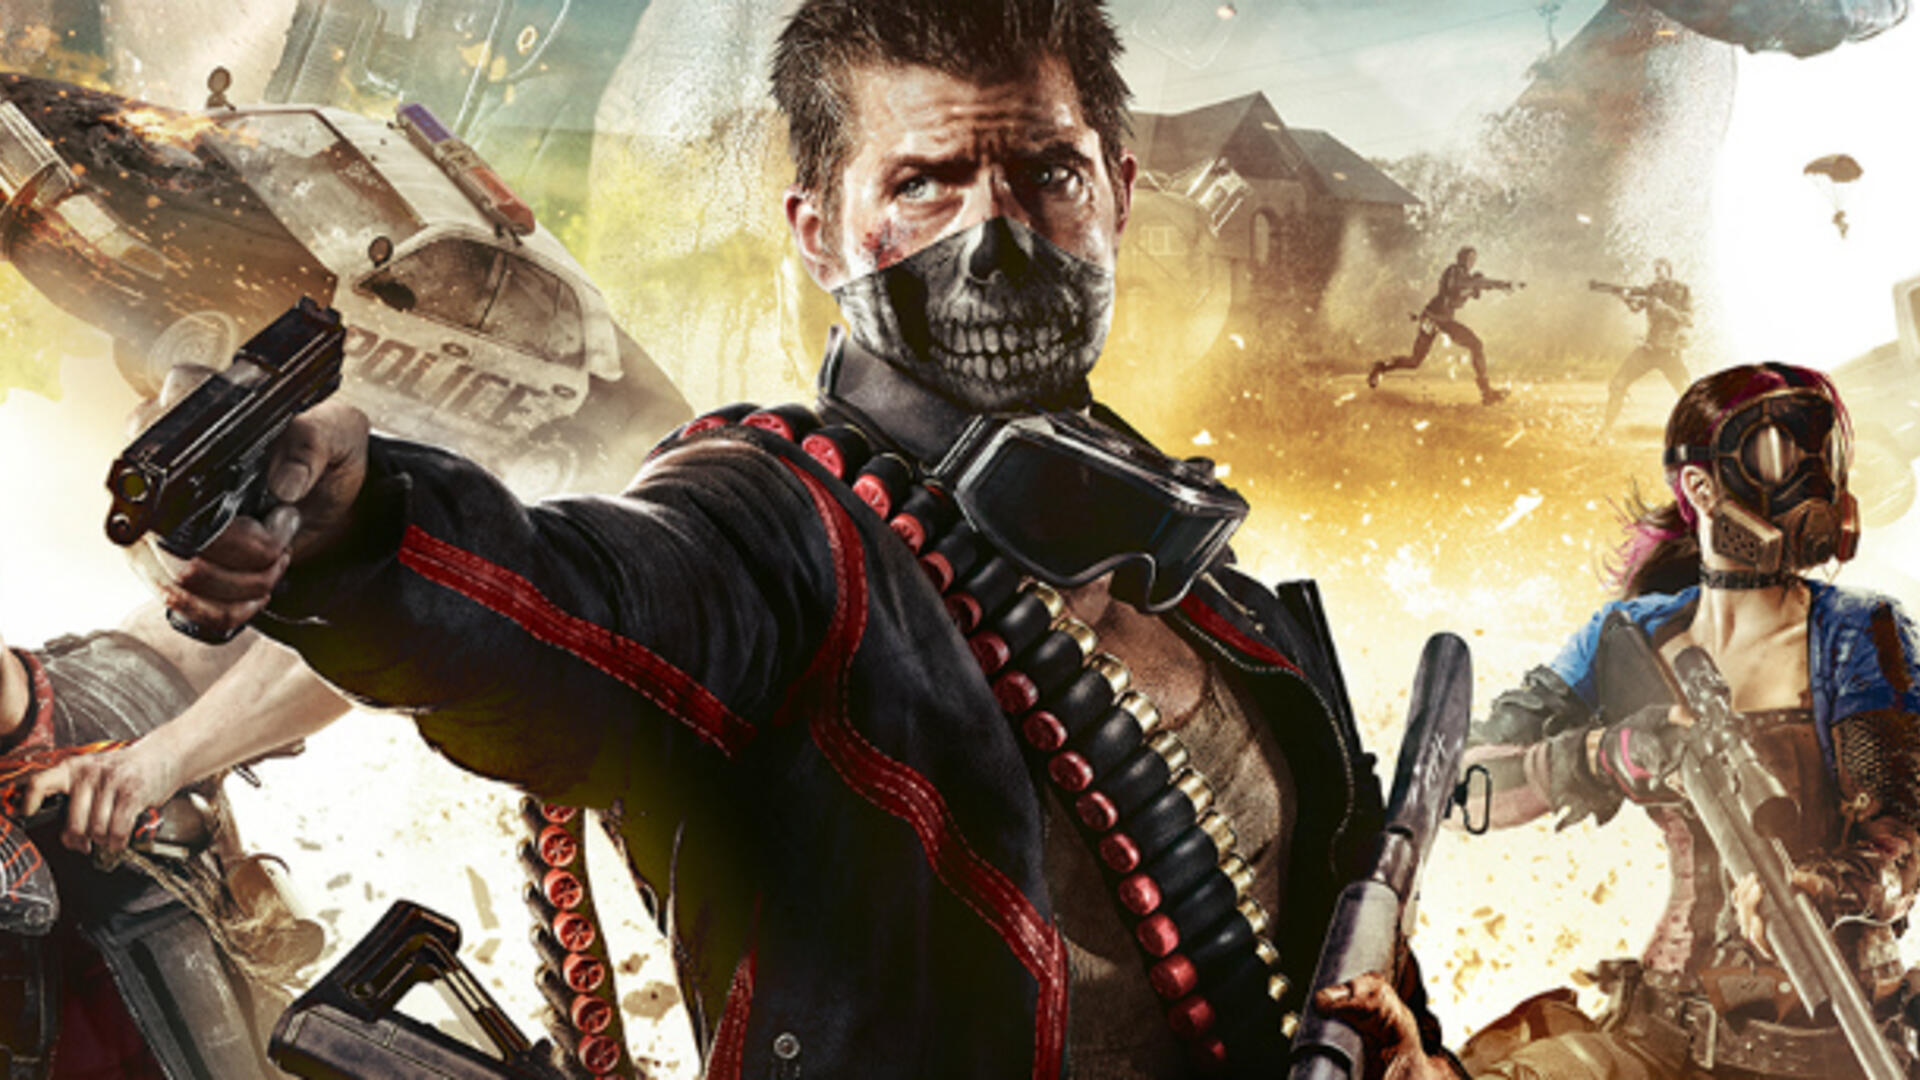 H1Z1 Battle Royale is Available on PS4 Today, Details Here